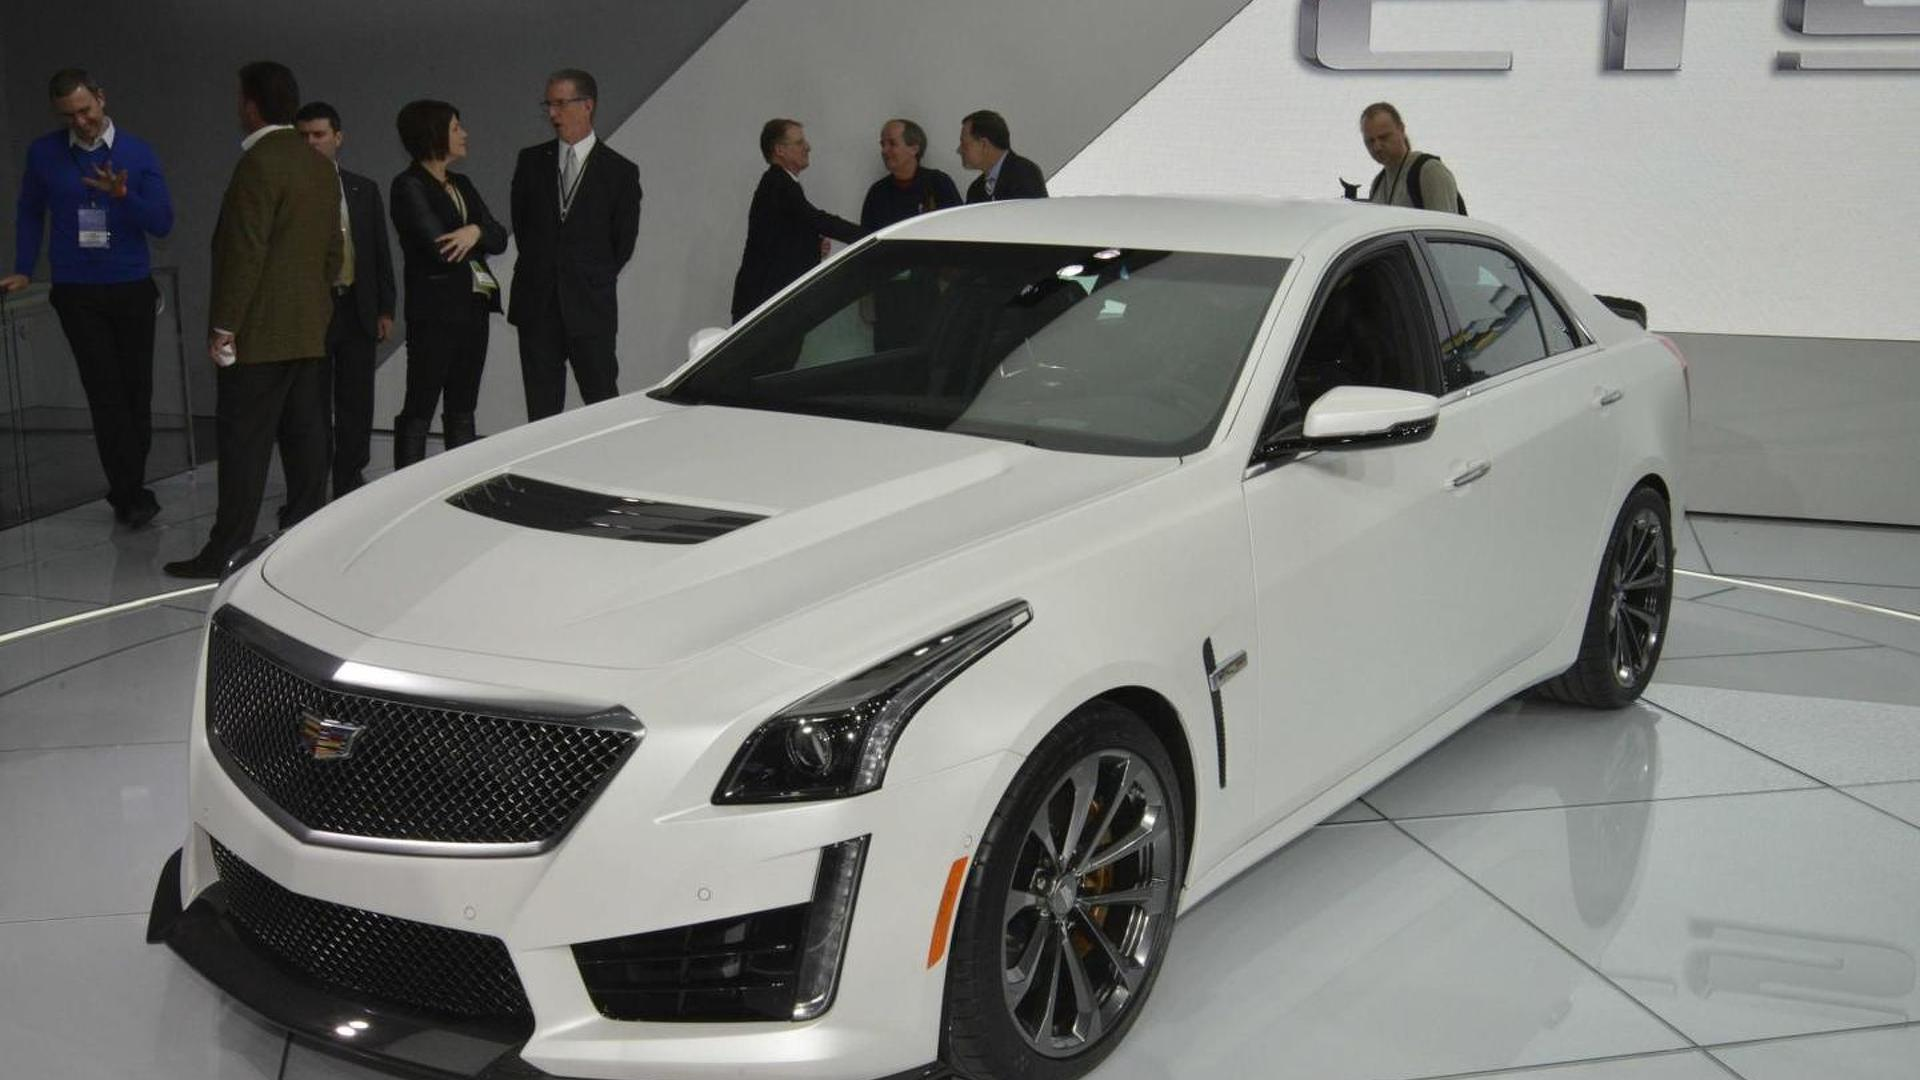 2016 Cadillac CTS-V arrives in Detroit with 640 bhp